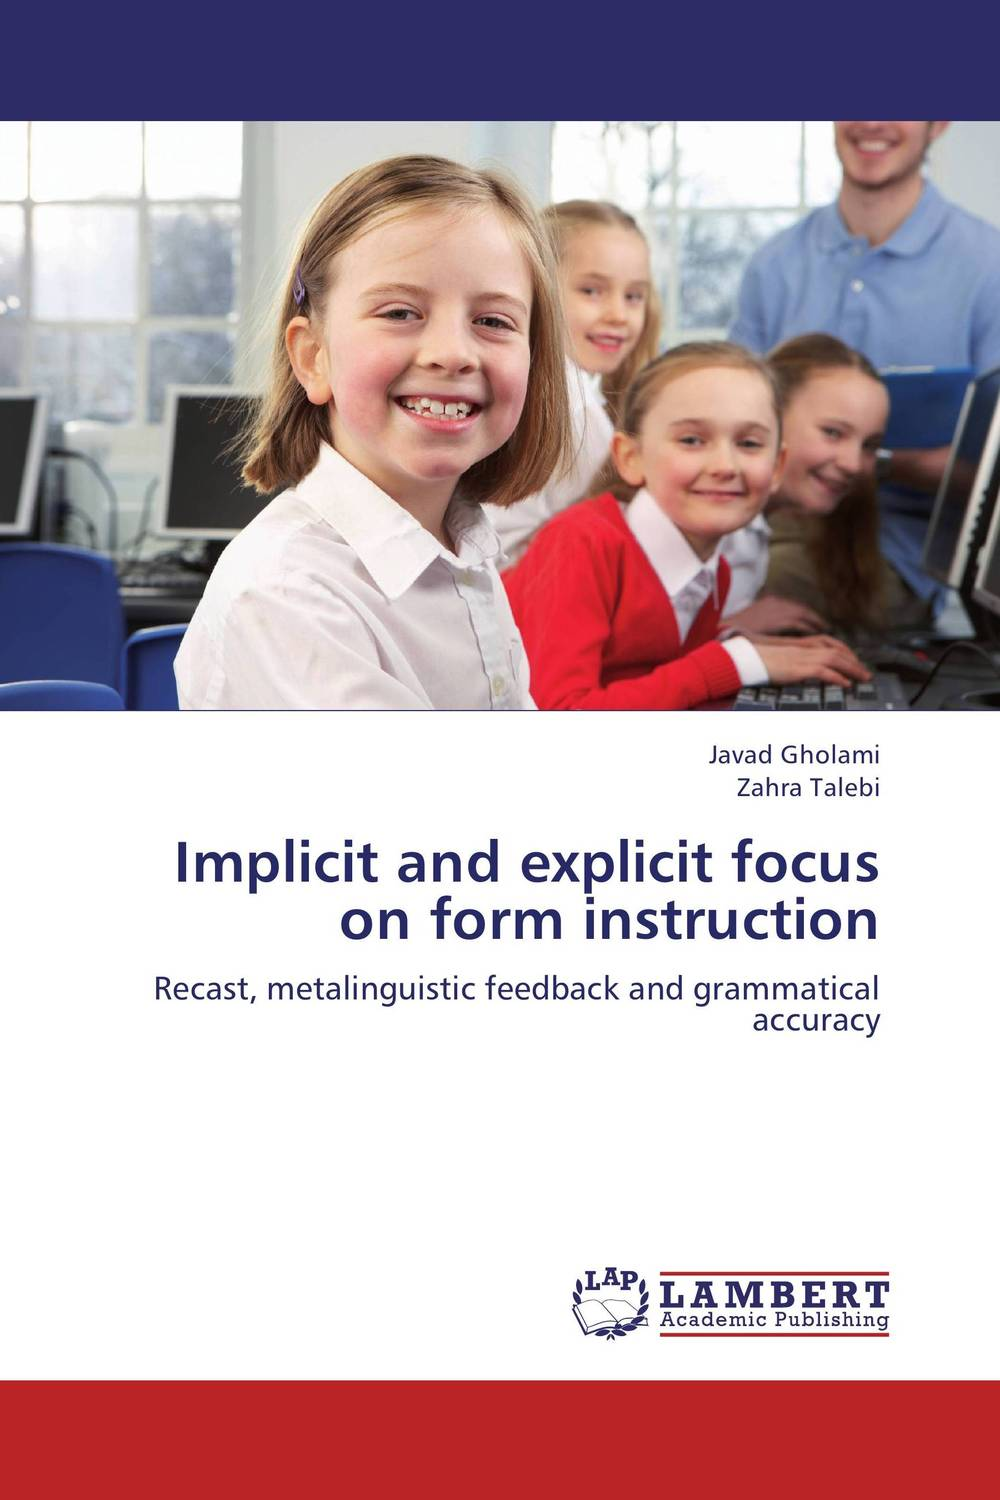 Implicit and explicit focus on form instruction planned preemptive vs delayed reactive focus on form